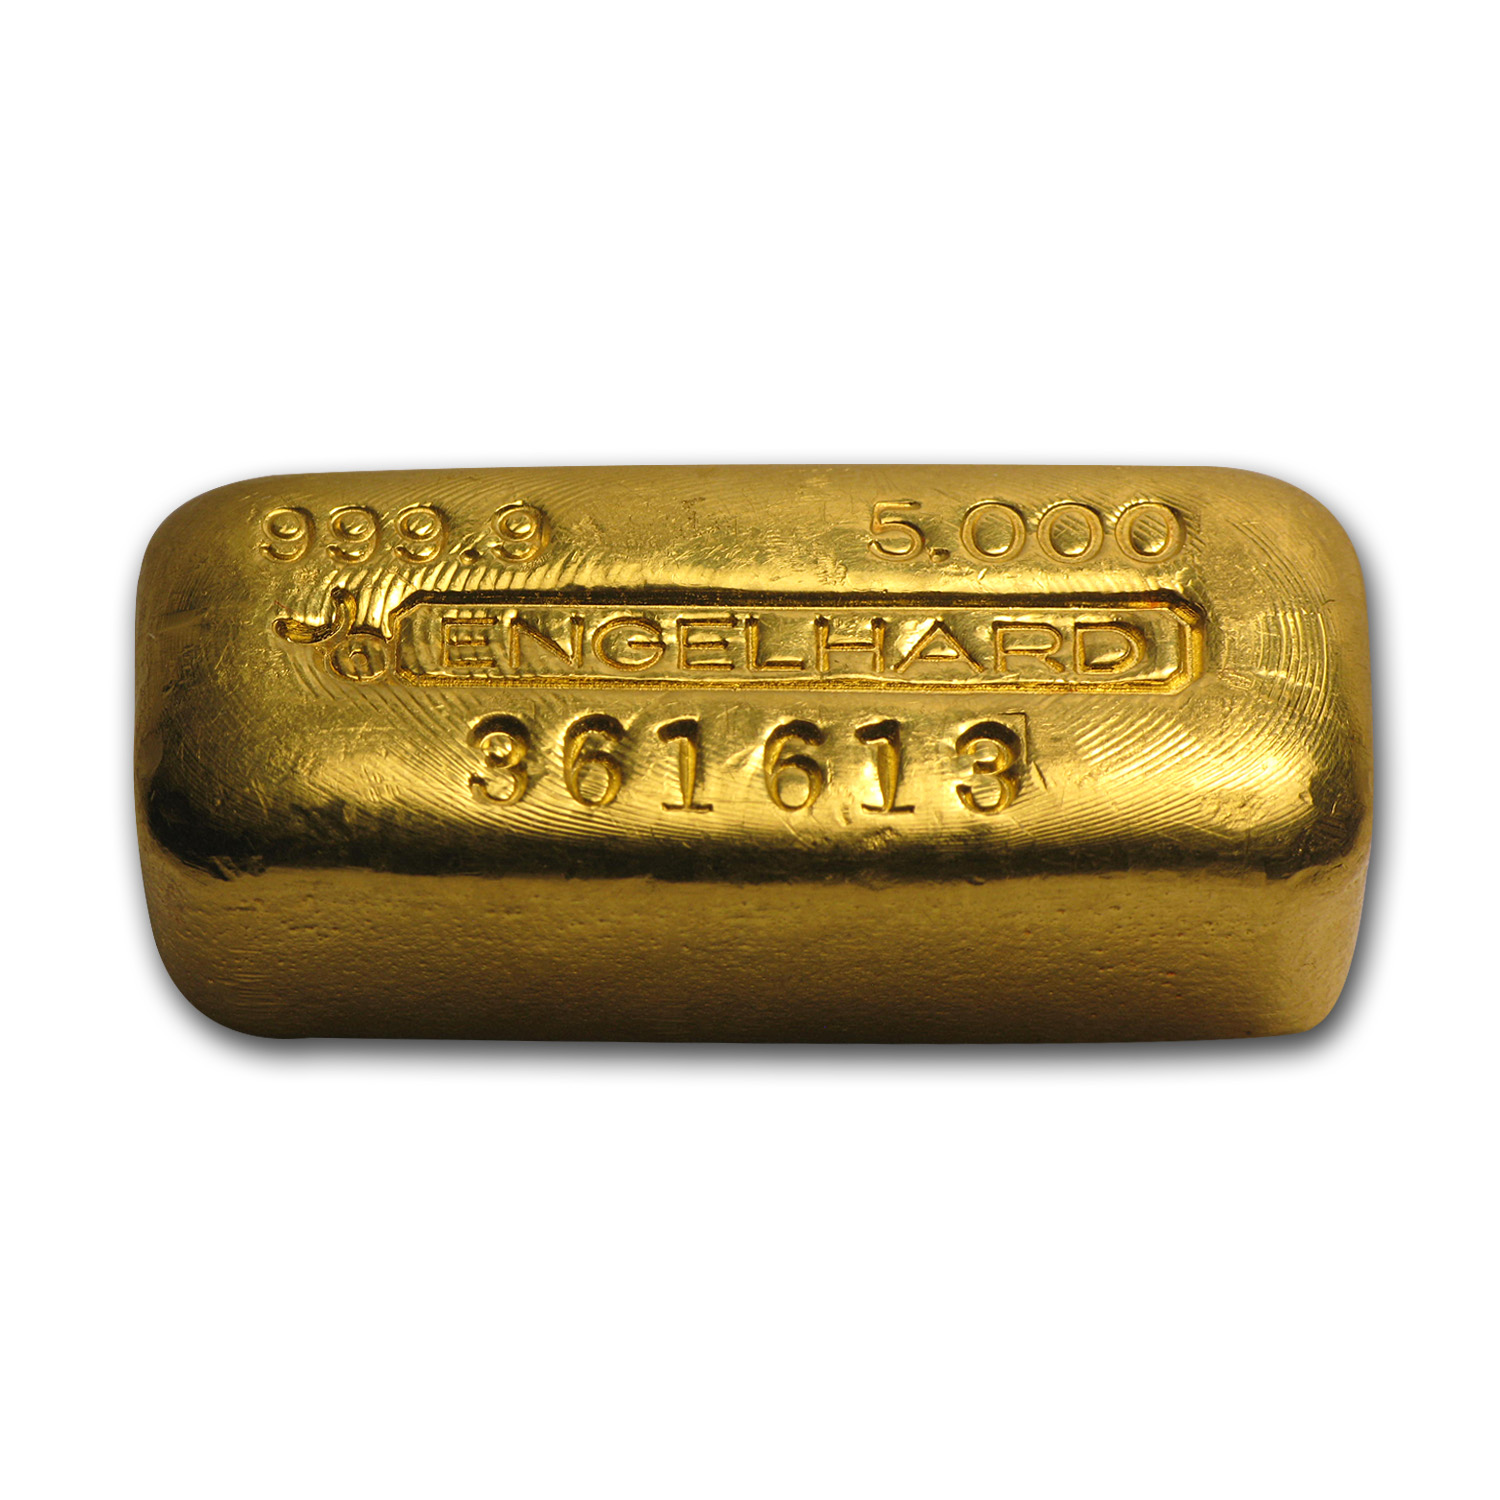 5 oz Gold Bars - Engelhard (Poured/Loaf-Style, Bull Logo)